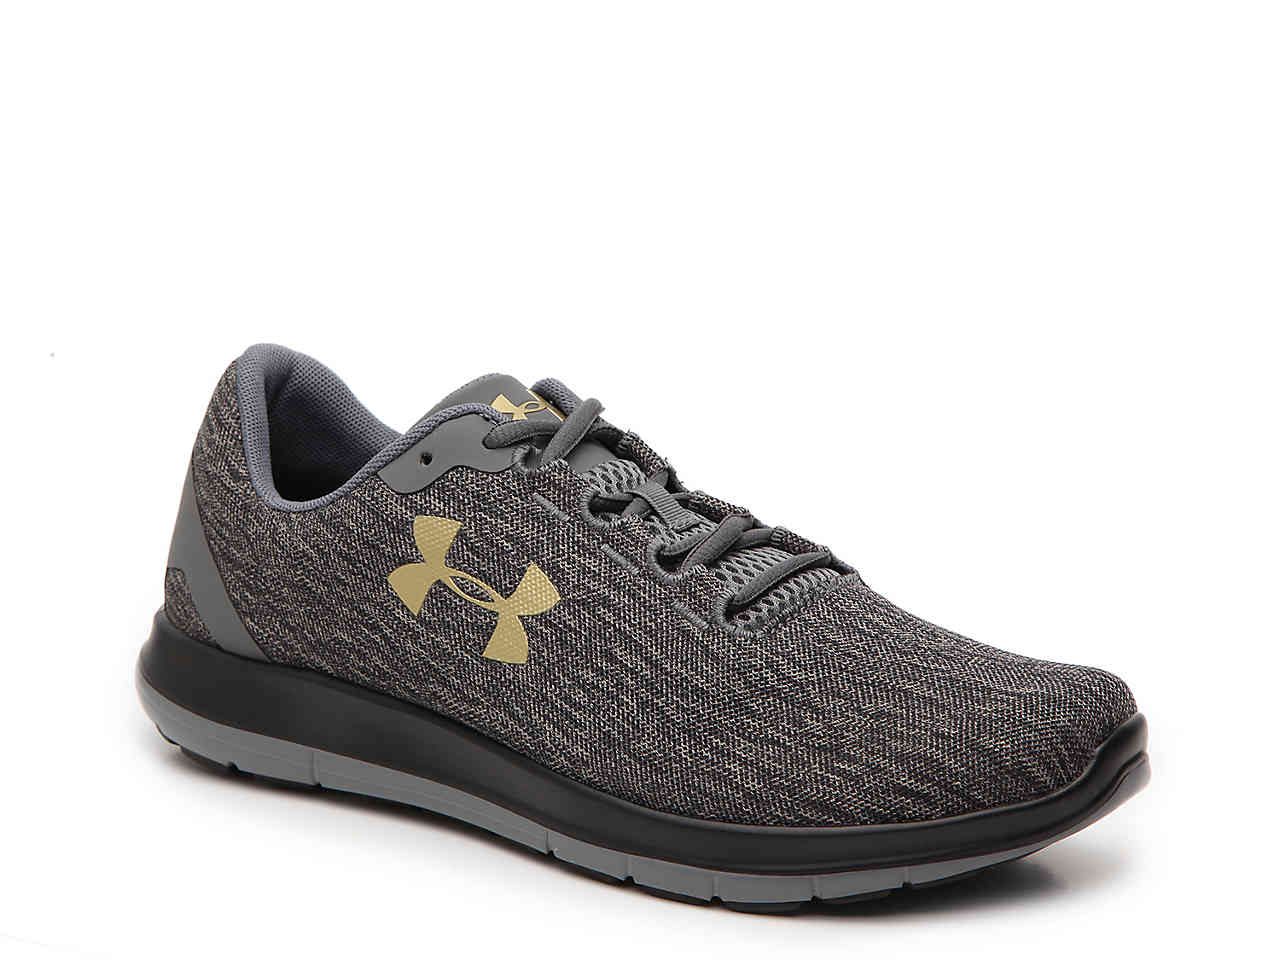 Under Armour Shoes For Men   Under Armour Shoes  1657d8f90a1